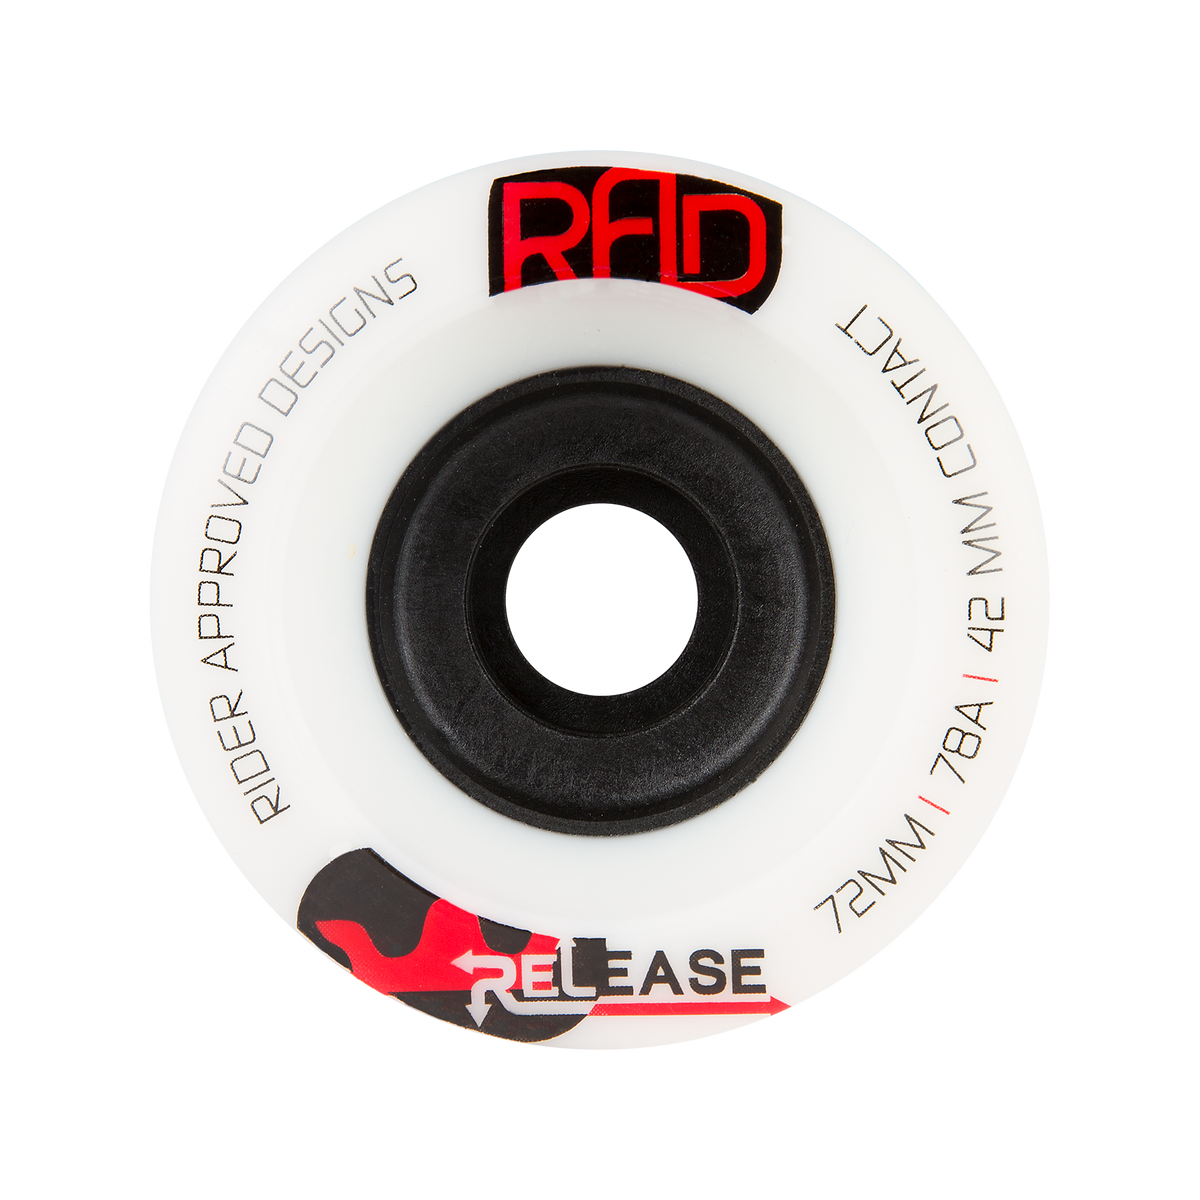 RAD 72mm 78a Release White